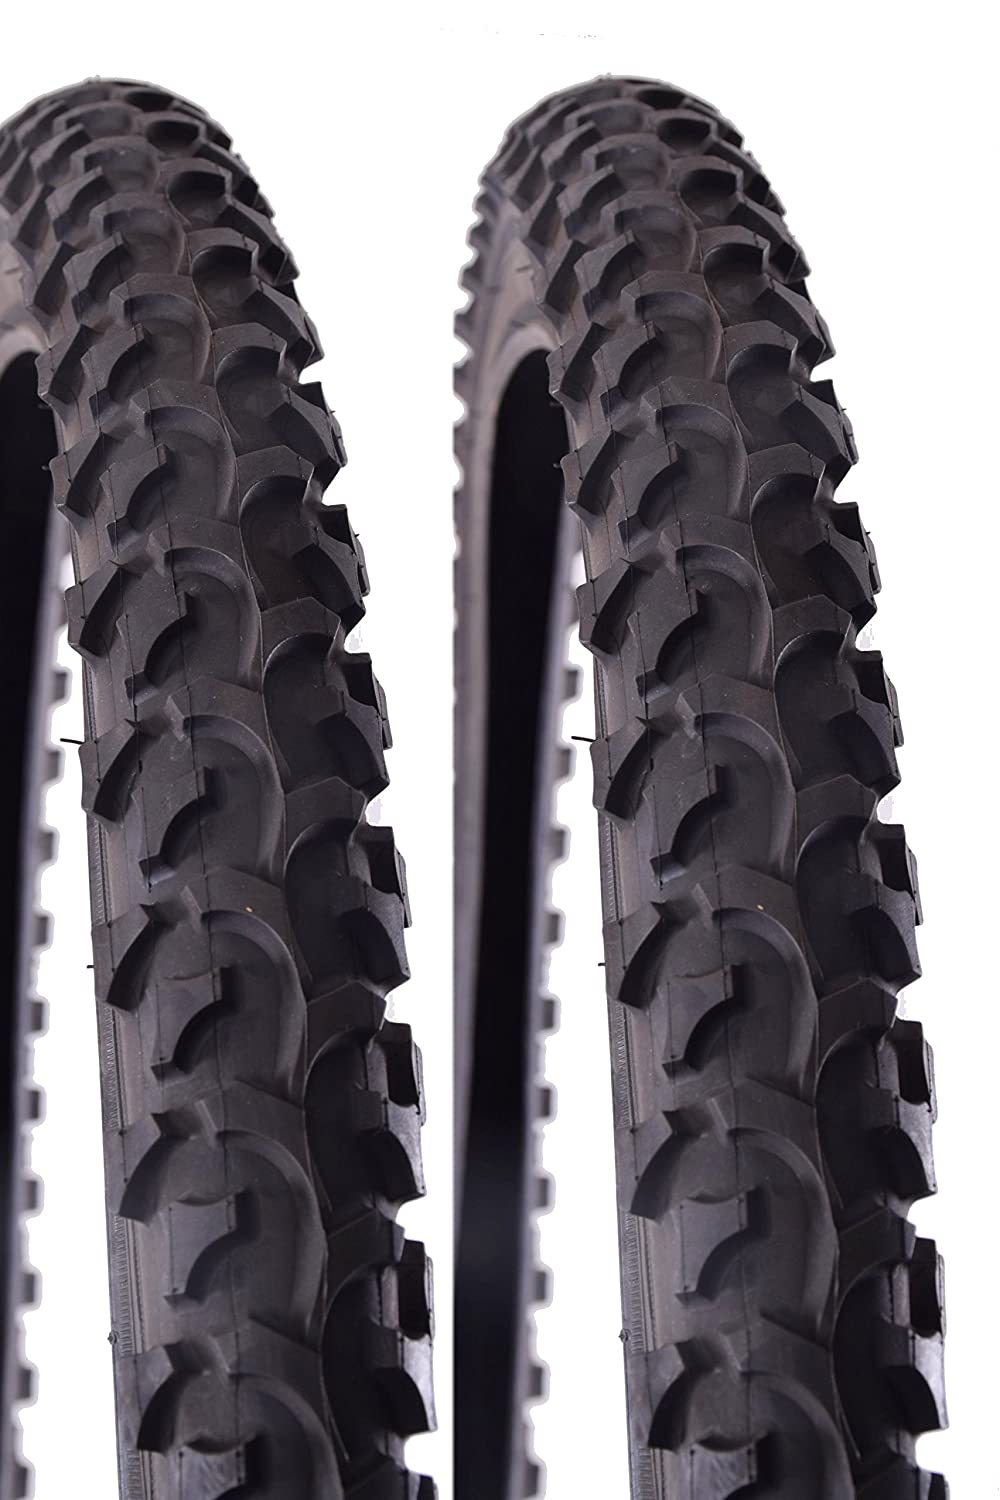 Kenda K850 26' x 2.10' Mountain Bike ATB Tyres Knobbly Tractor Tread Black - 2 tyres